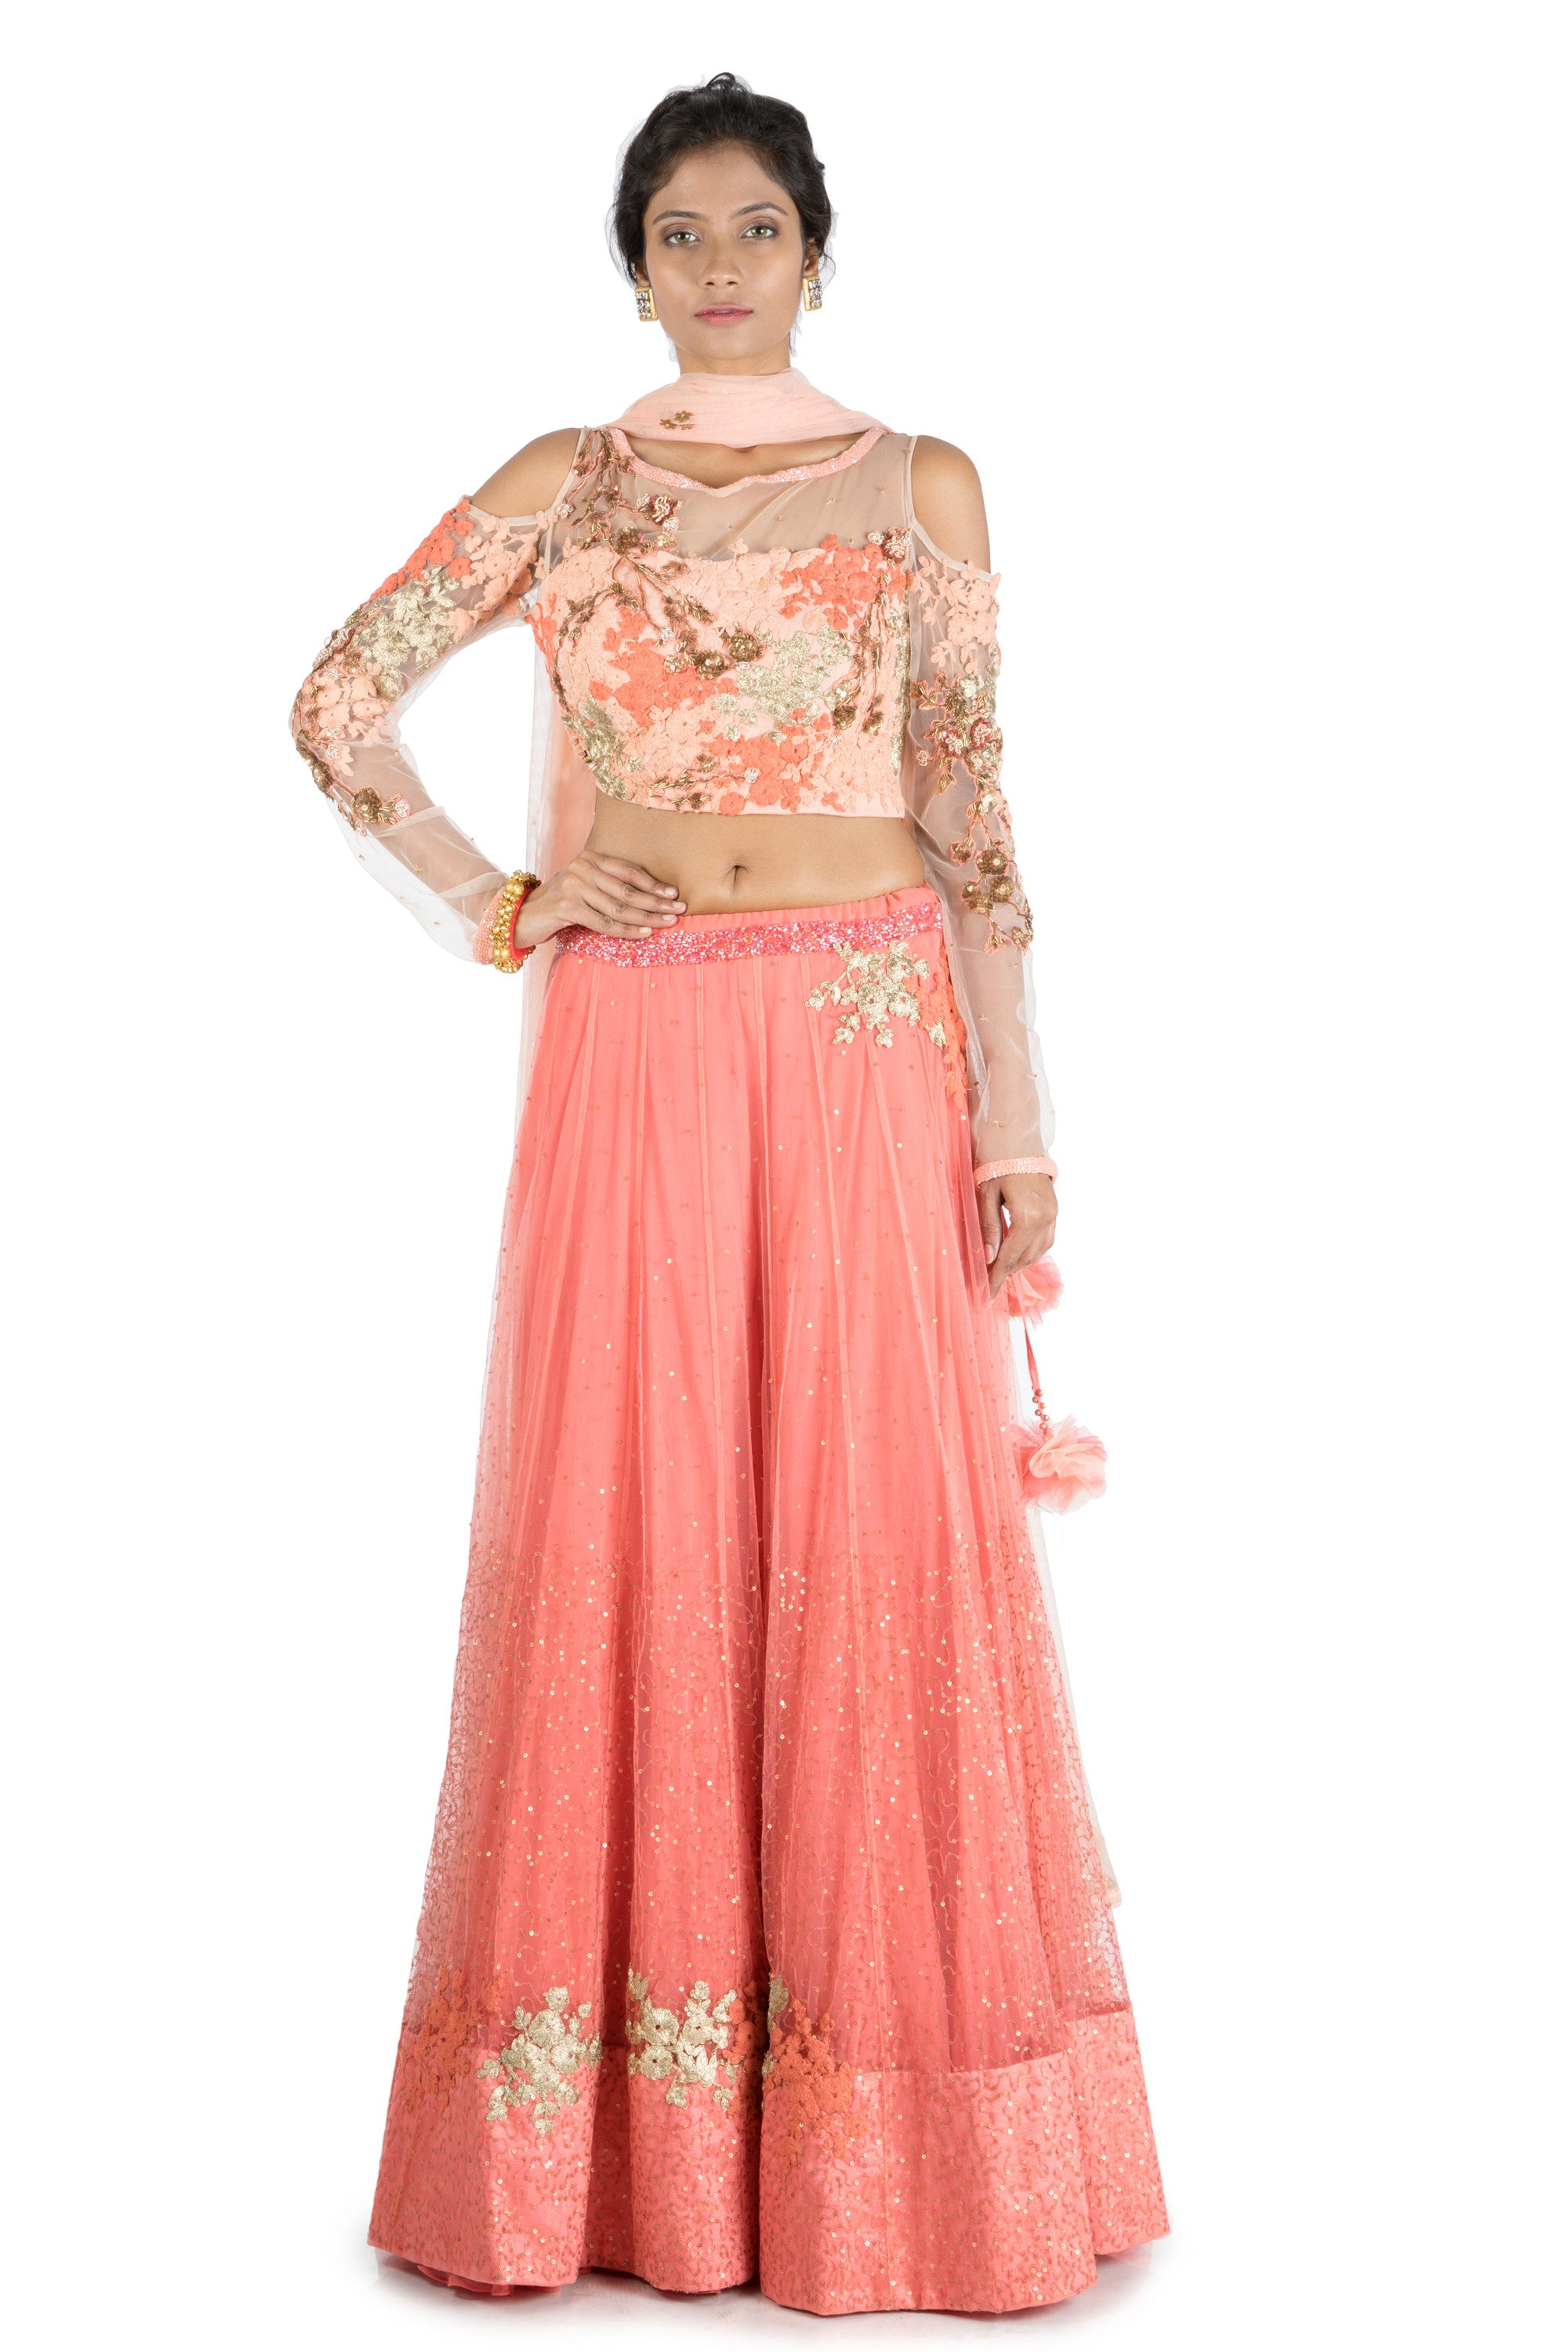 2c7bbb426fe7ed Dark Peach Lehenga With Embroidered cold shoulder blouse | Vintage Desi